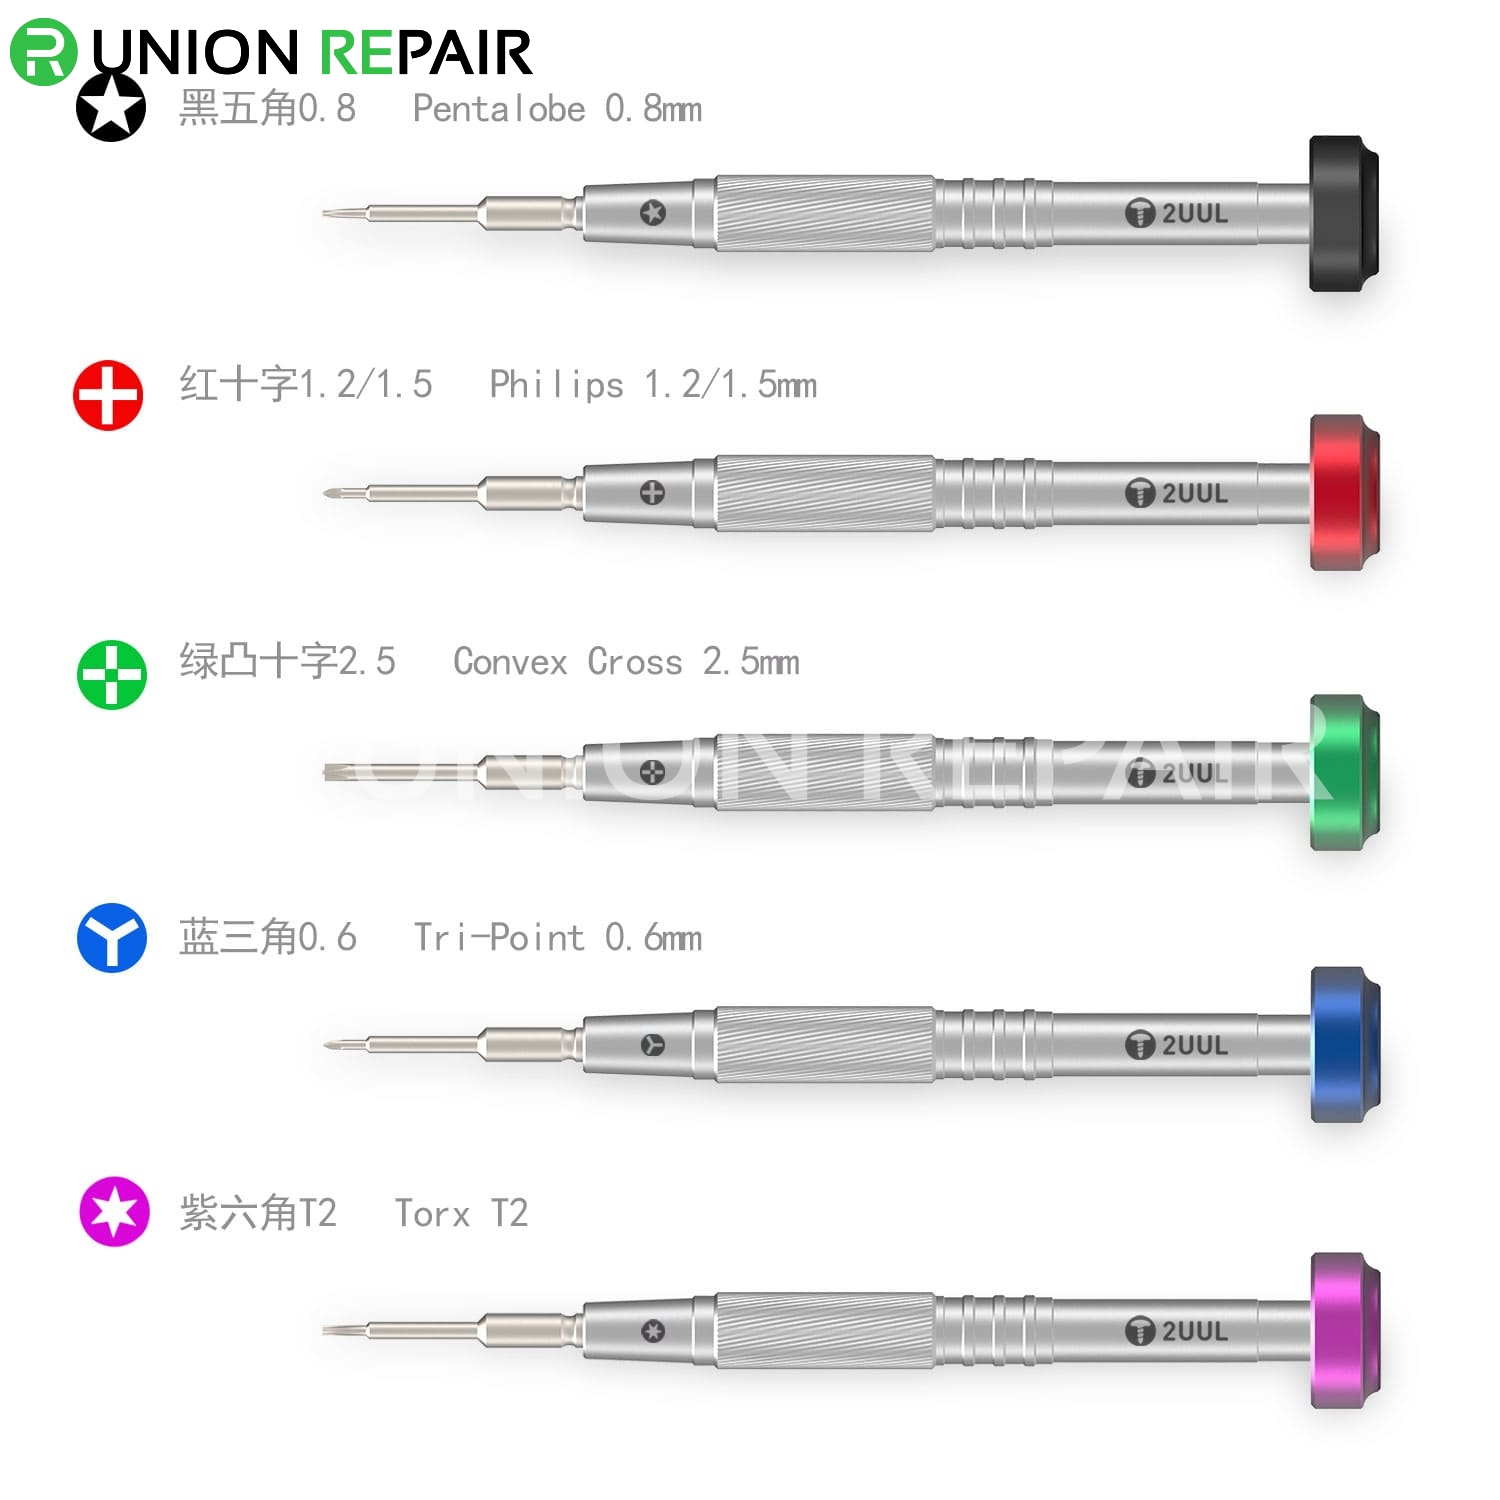 2UUL Everyday Screwdriver for Phone Repair